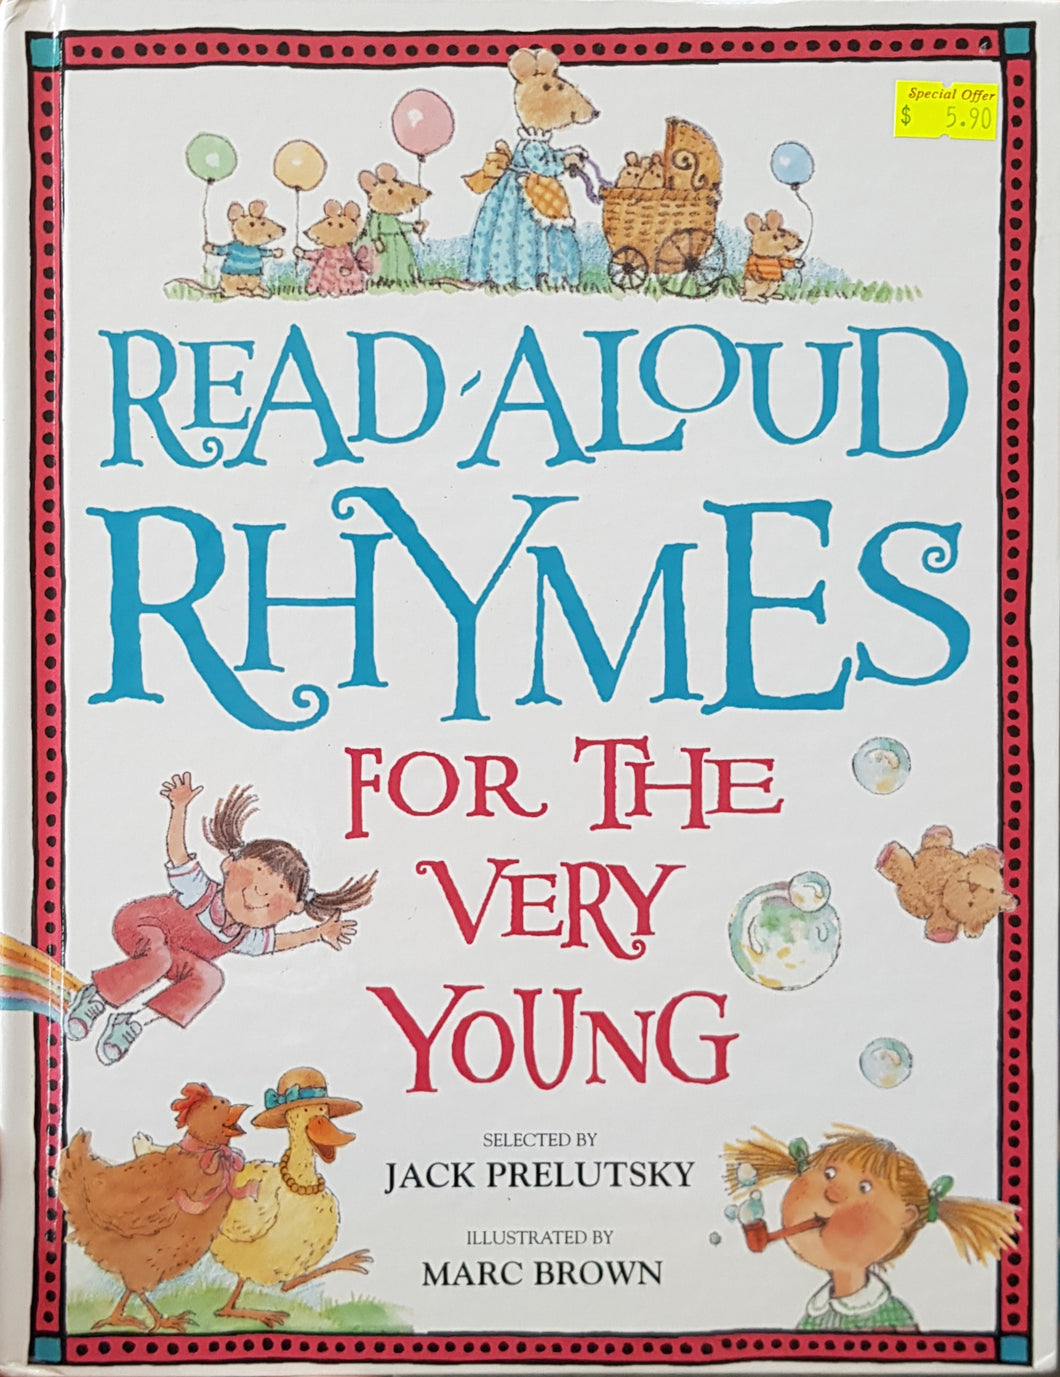 Read-Aloud Rhymes for the Very Young - Jack Prelutsky & Marc Brown